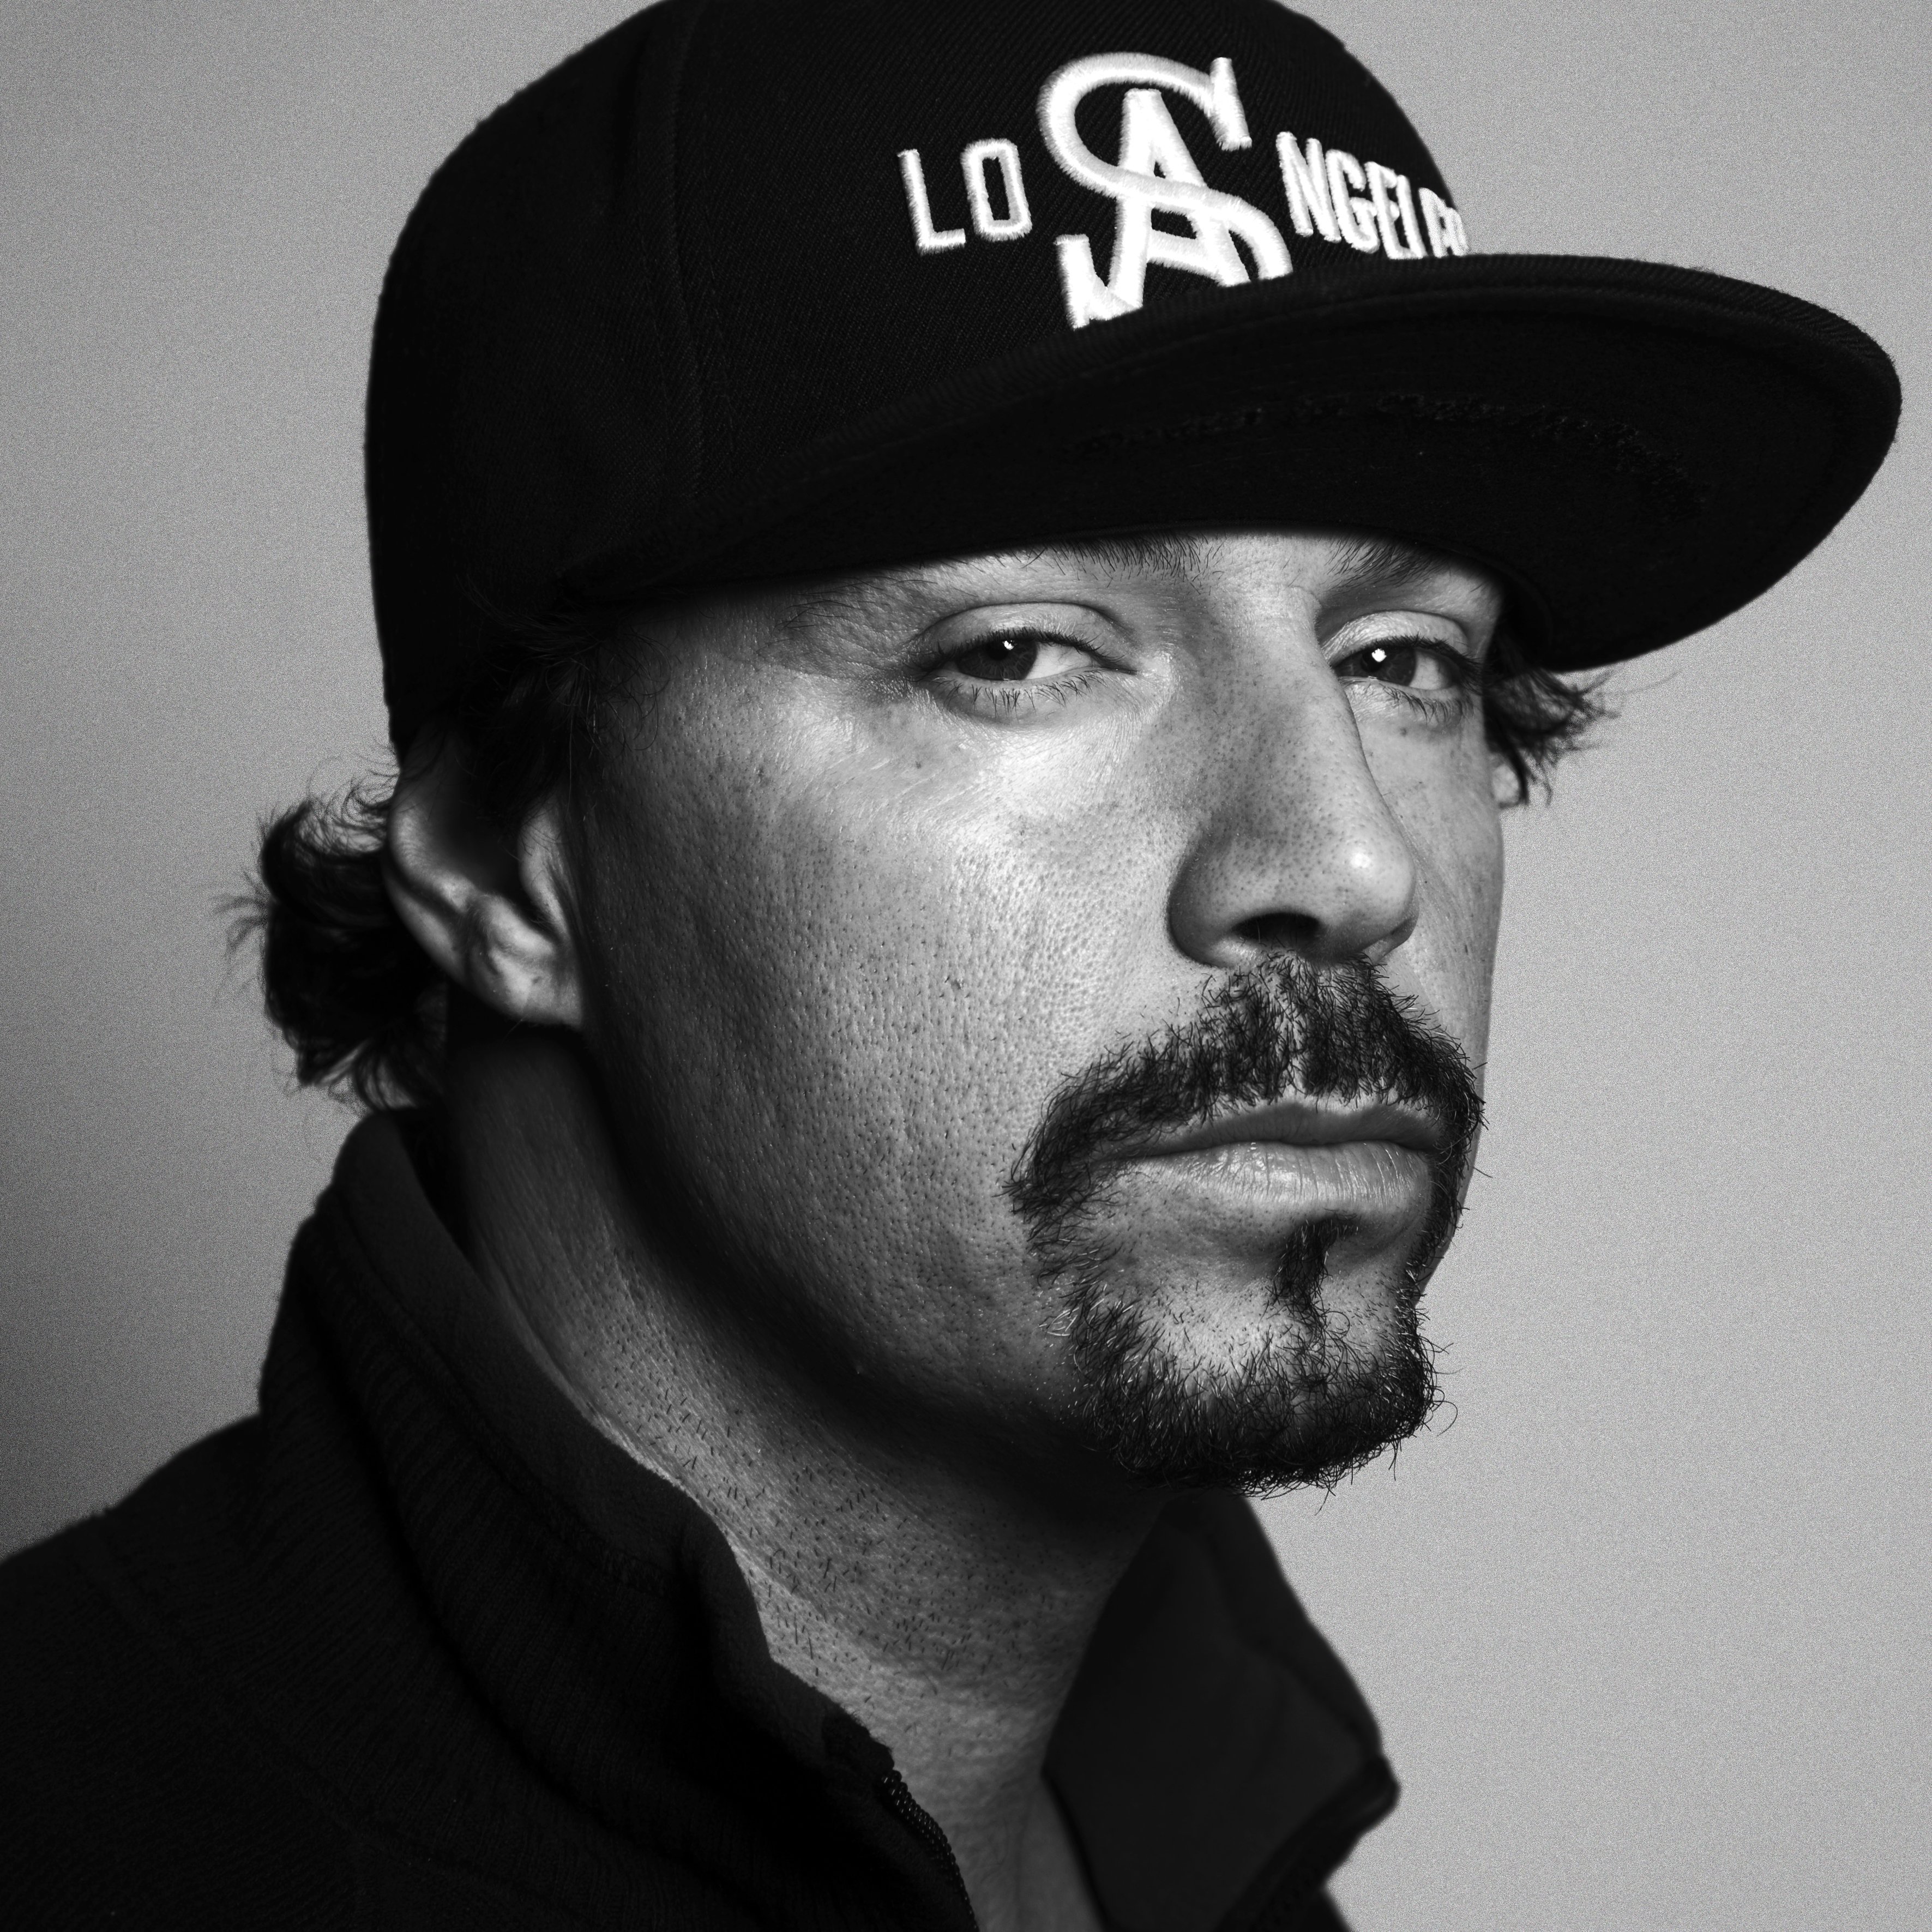 DJ Muggs Announces Special Project With Doom As Part of New Album